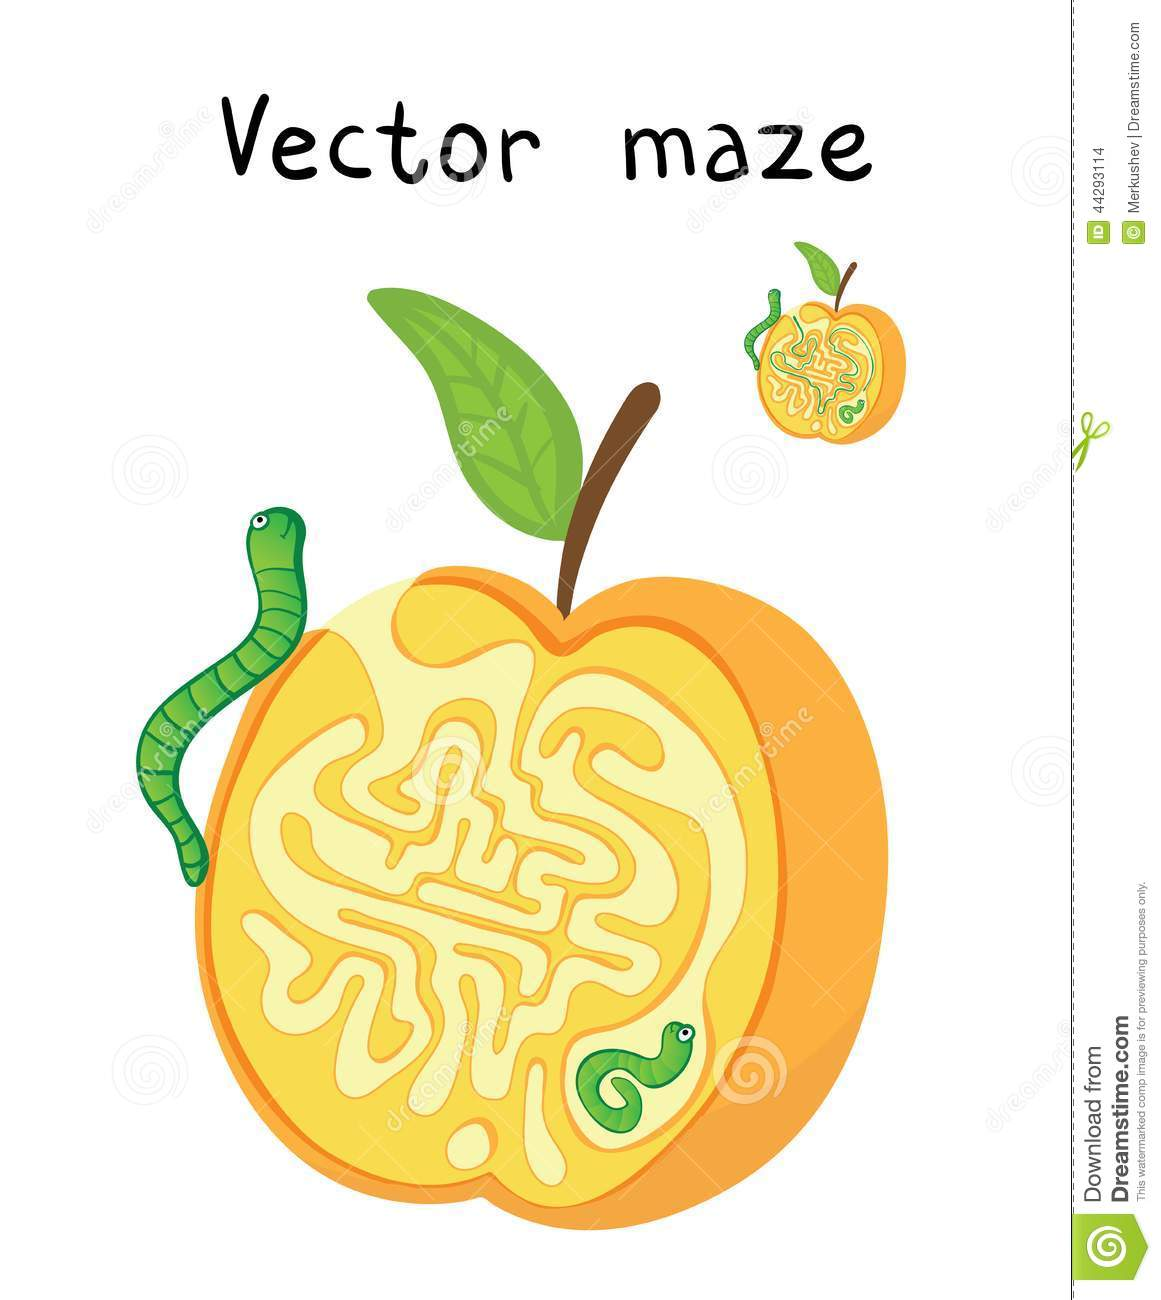 Vector Maze Labyrinth With Apple And Worms